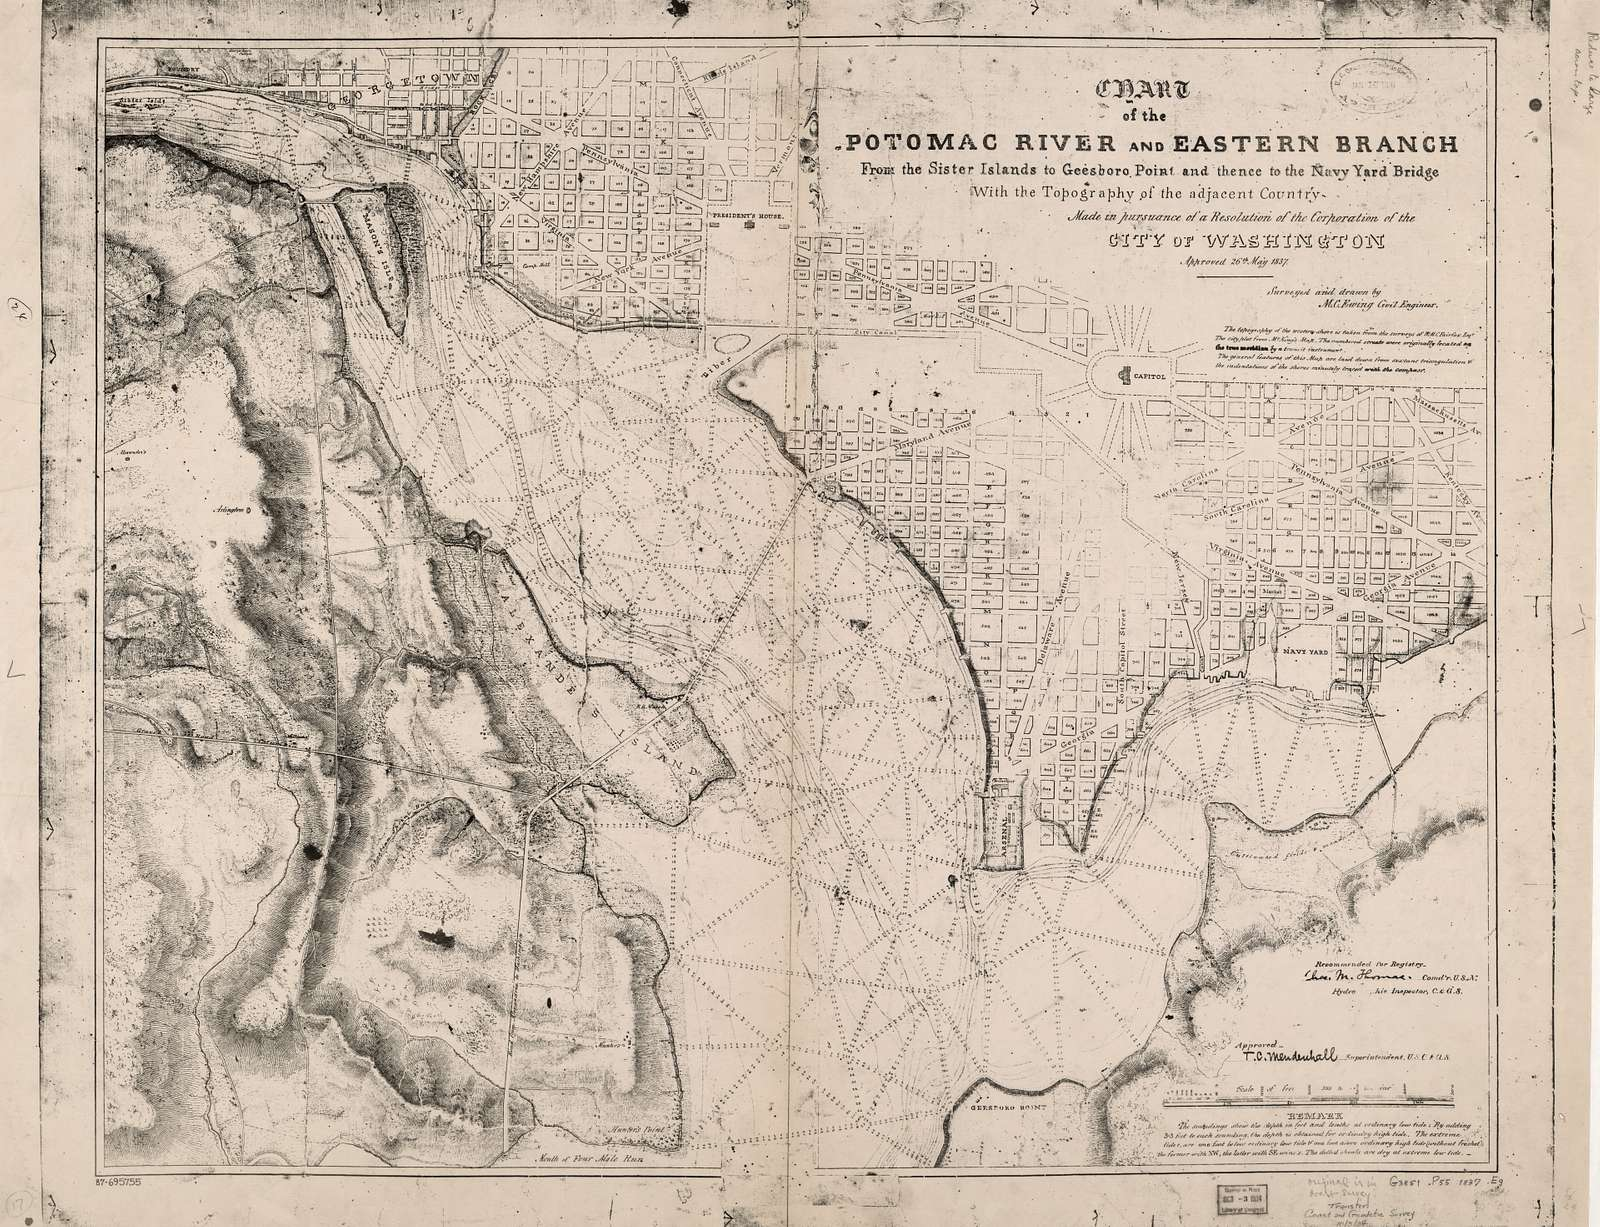 Chart of the Potomac River and Eastern Branch from the Sister Islands to Geesboro Point and thence to the Navy Yard Bridge : with the topography of the adjacent country : made in pursuance of a resolution of the Corporation of the City of Washington, approved 26th May 1837 /